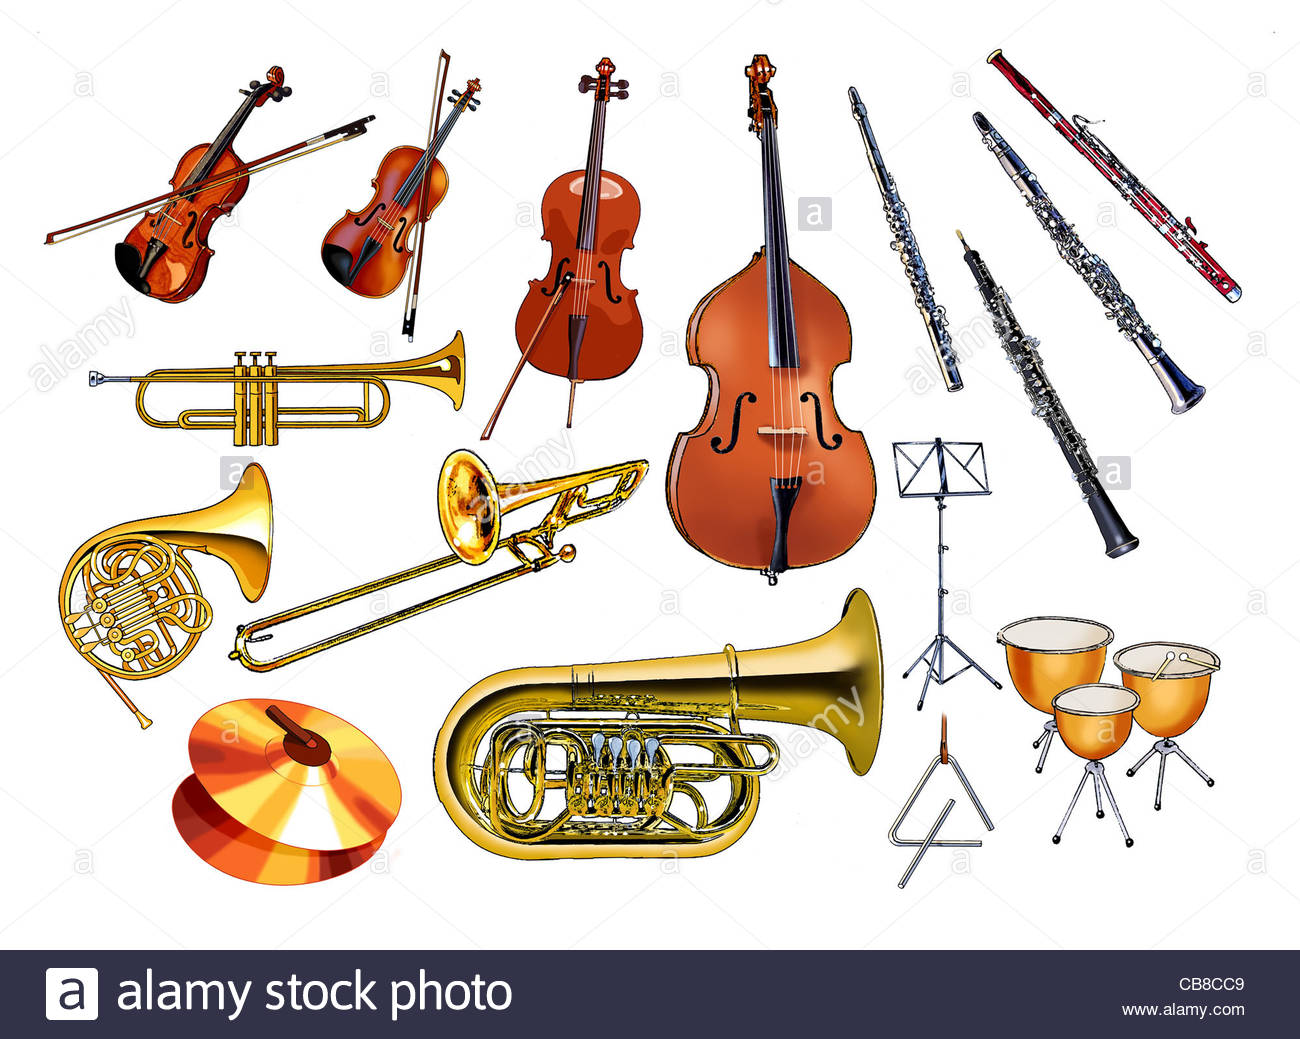 Plucked Instruments Stock Photos & Plucked Instruments Stock.